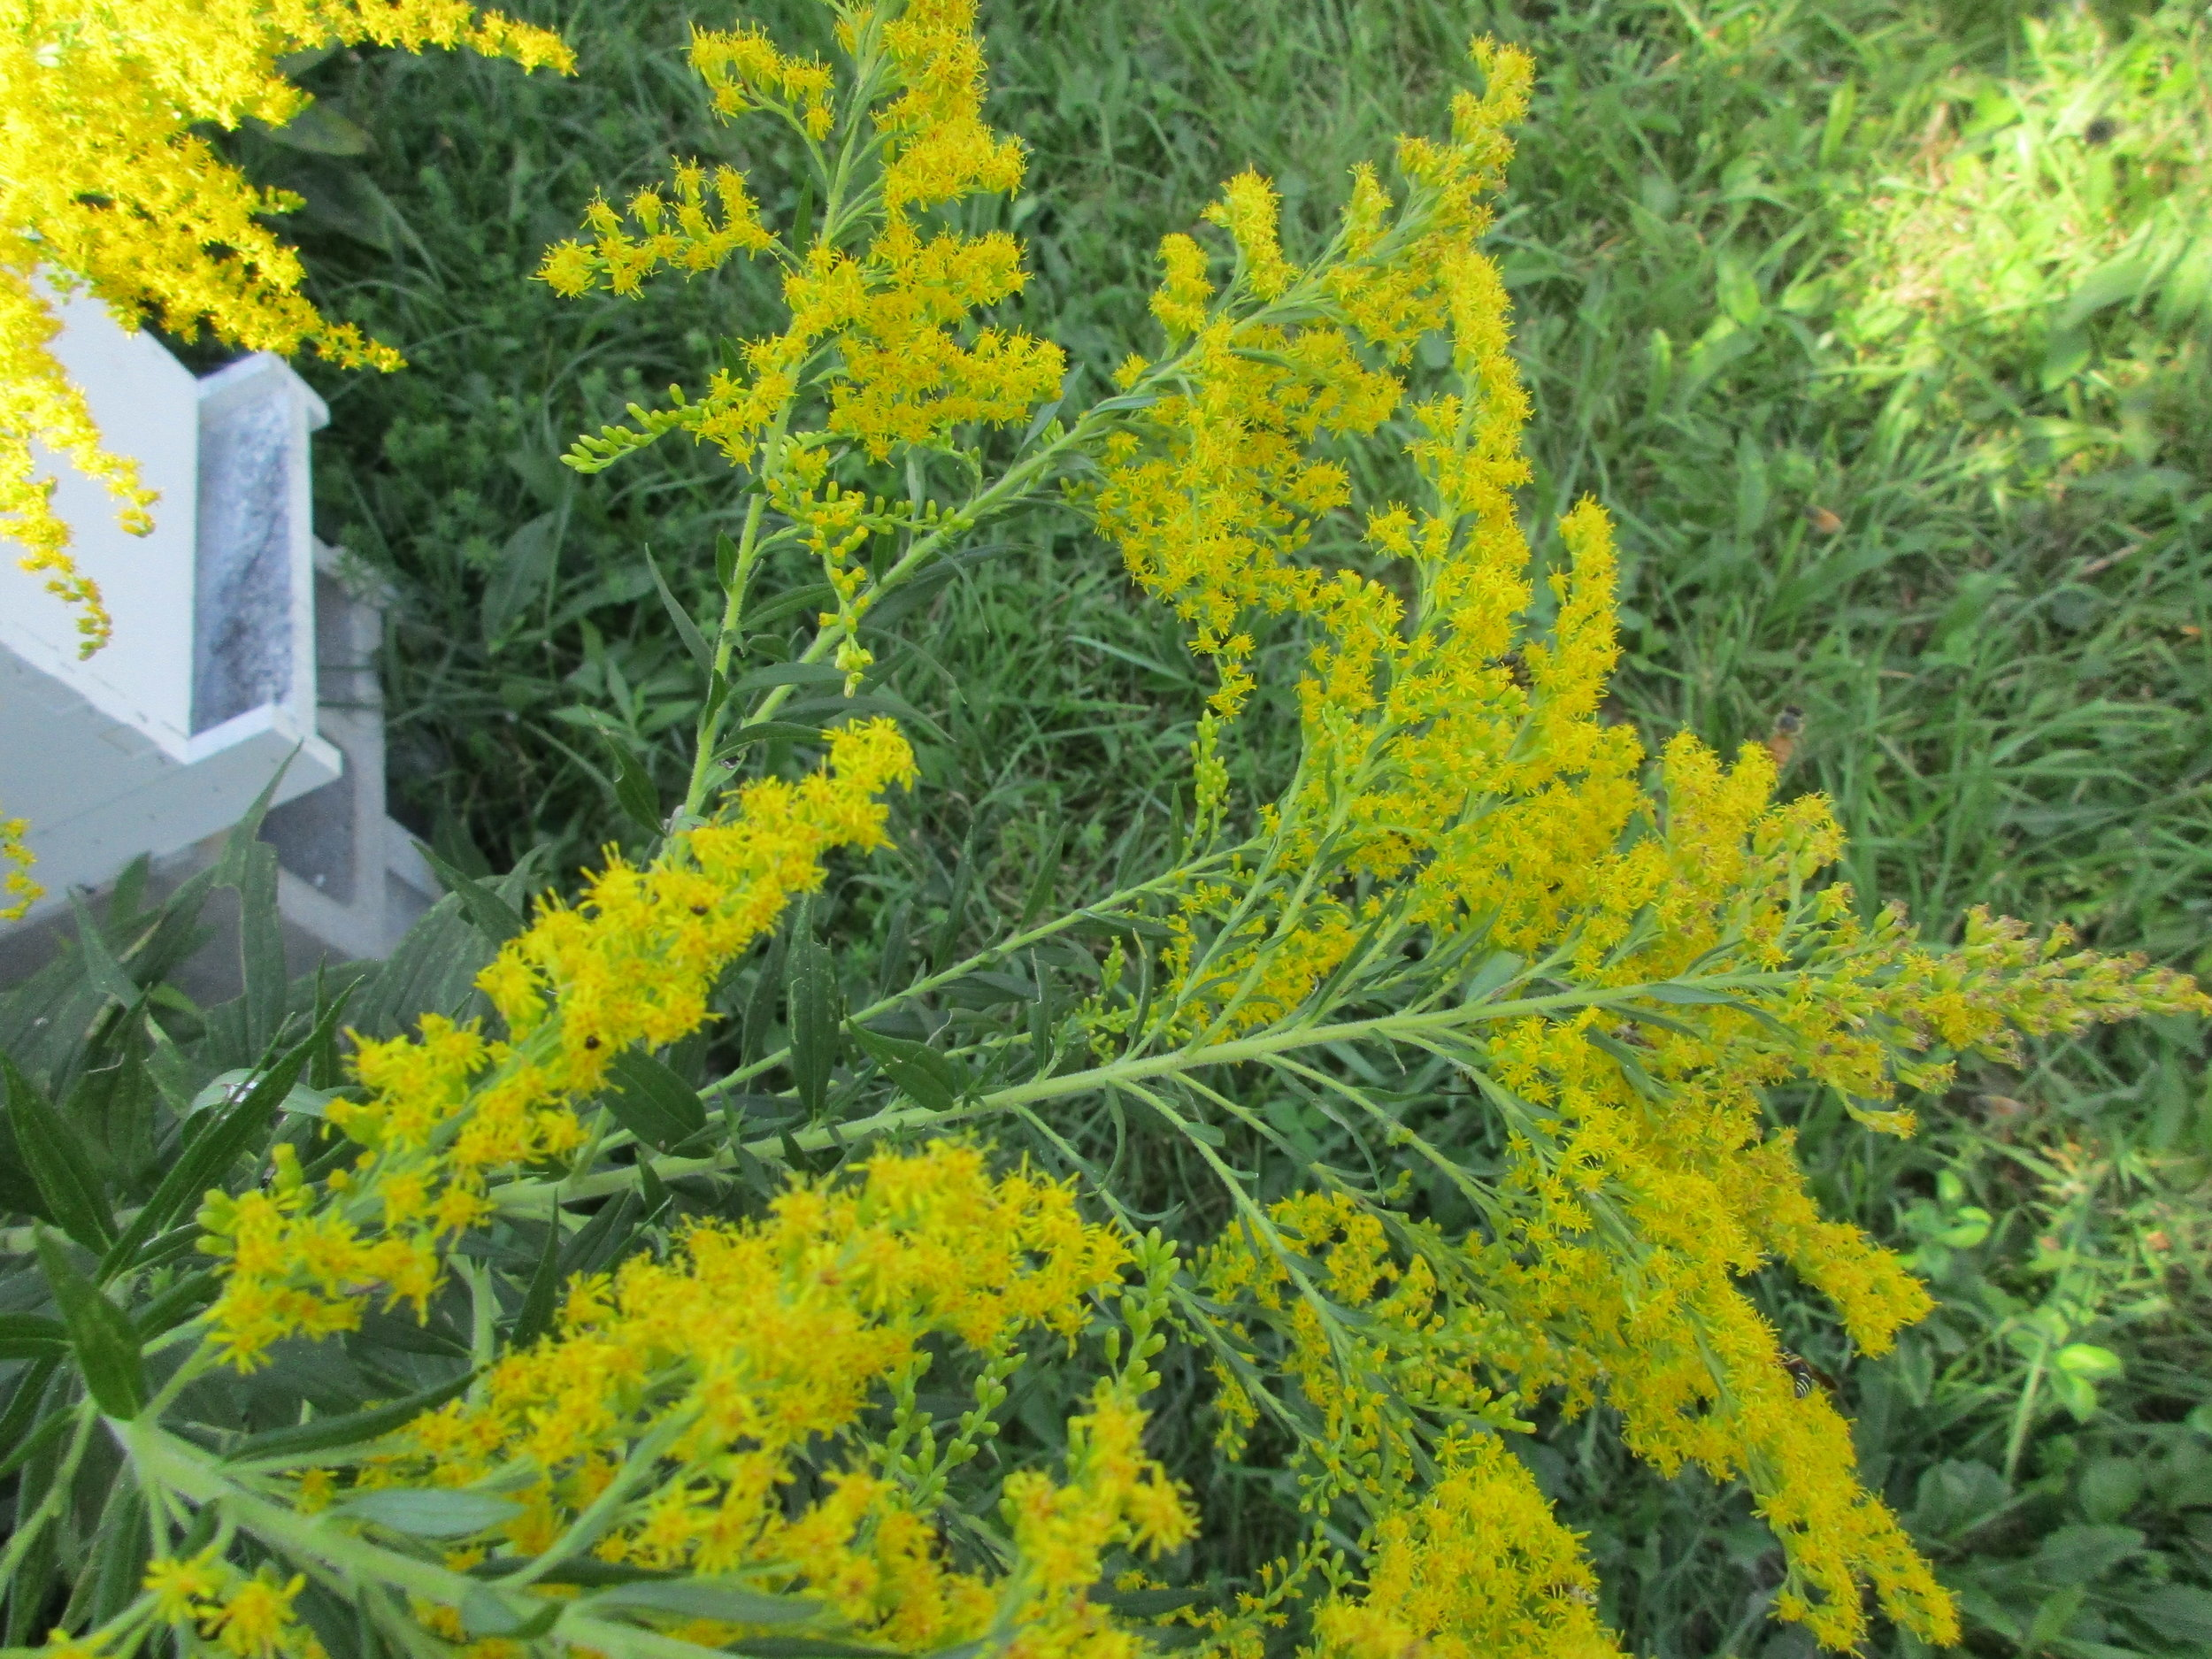 Goldenrod. Can you see the bees landing on it on the right?